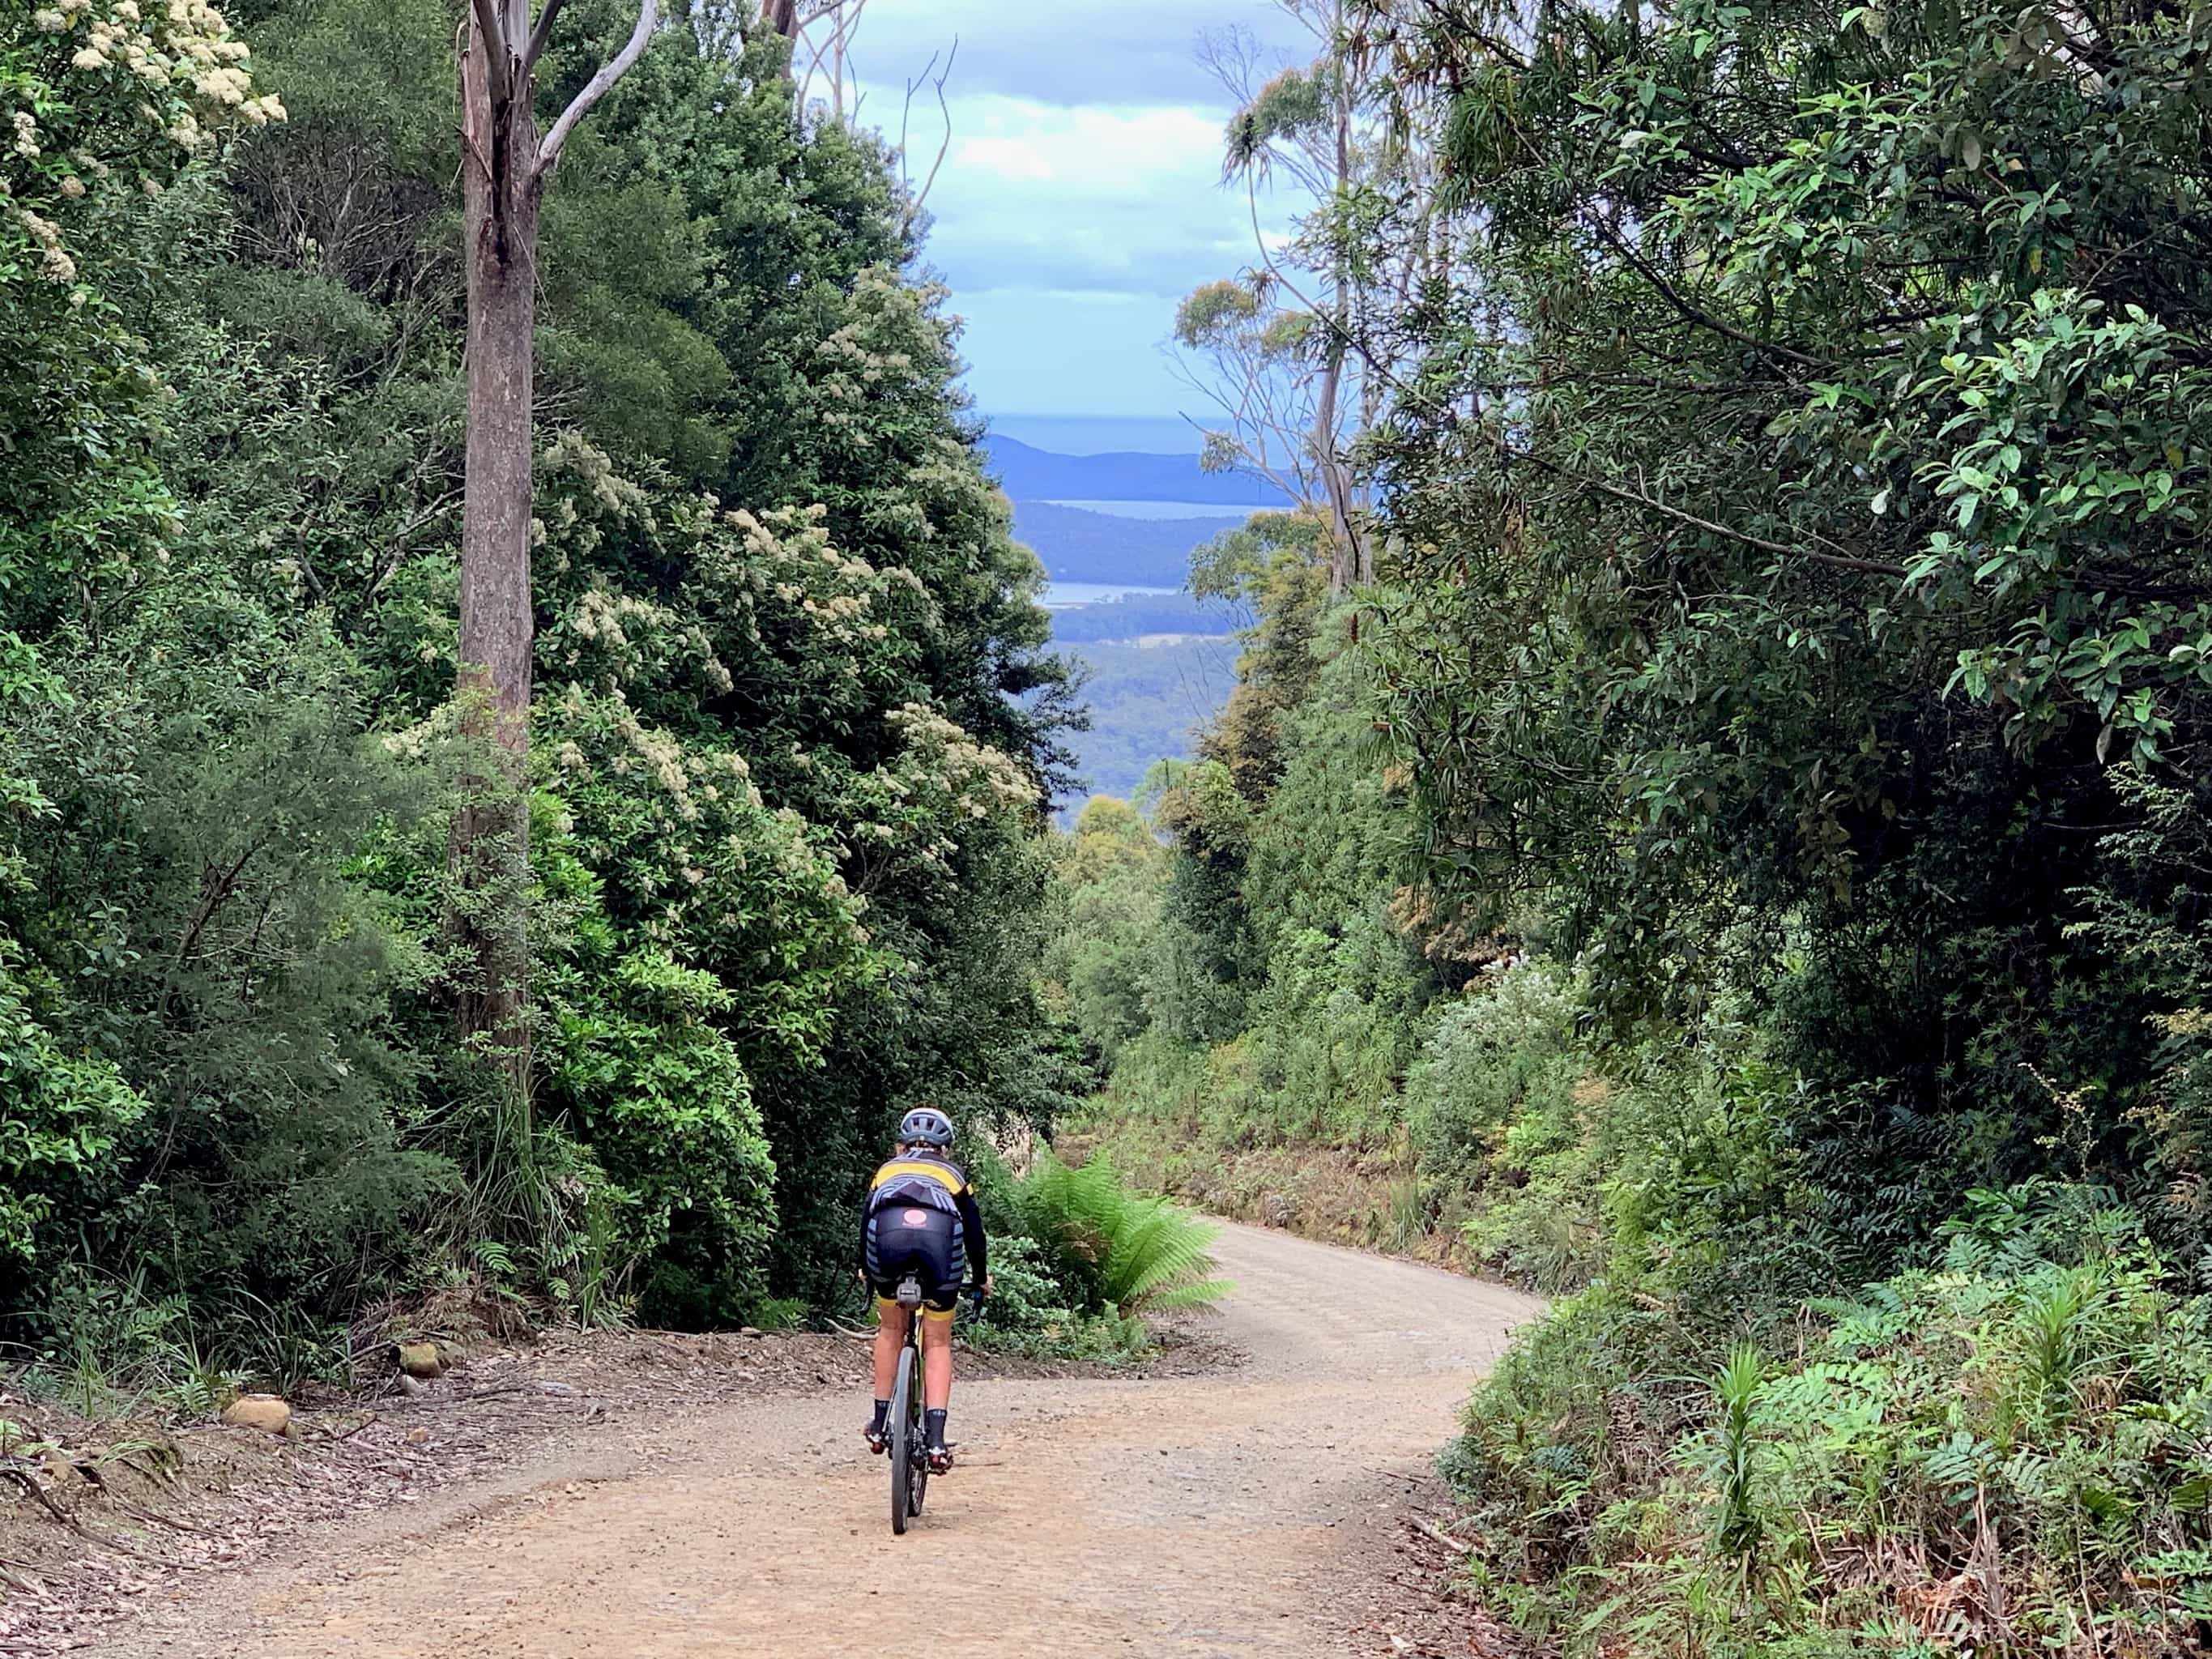 Bike rider descending gravel road from Mangana summit on South Bruny Island.